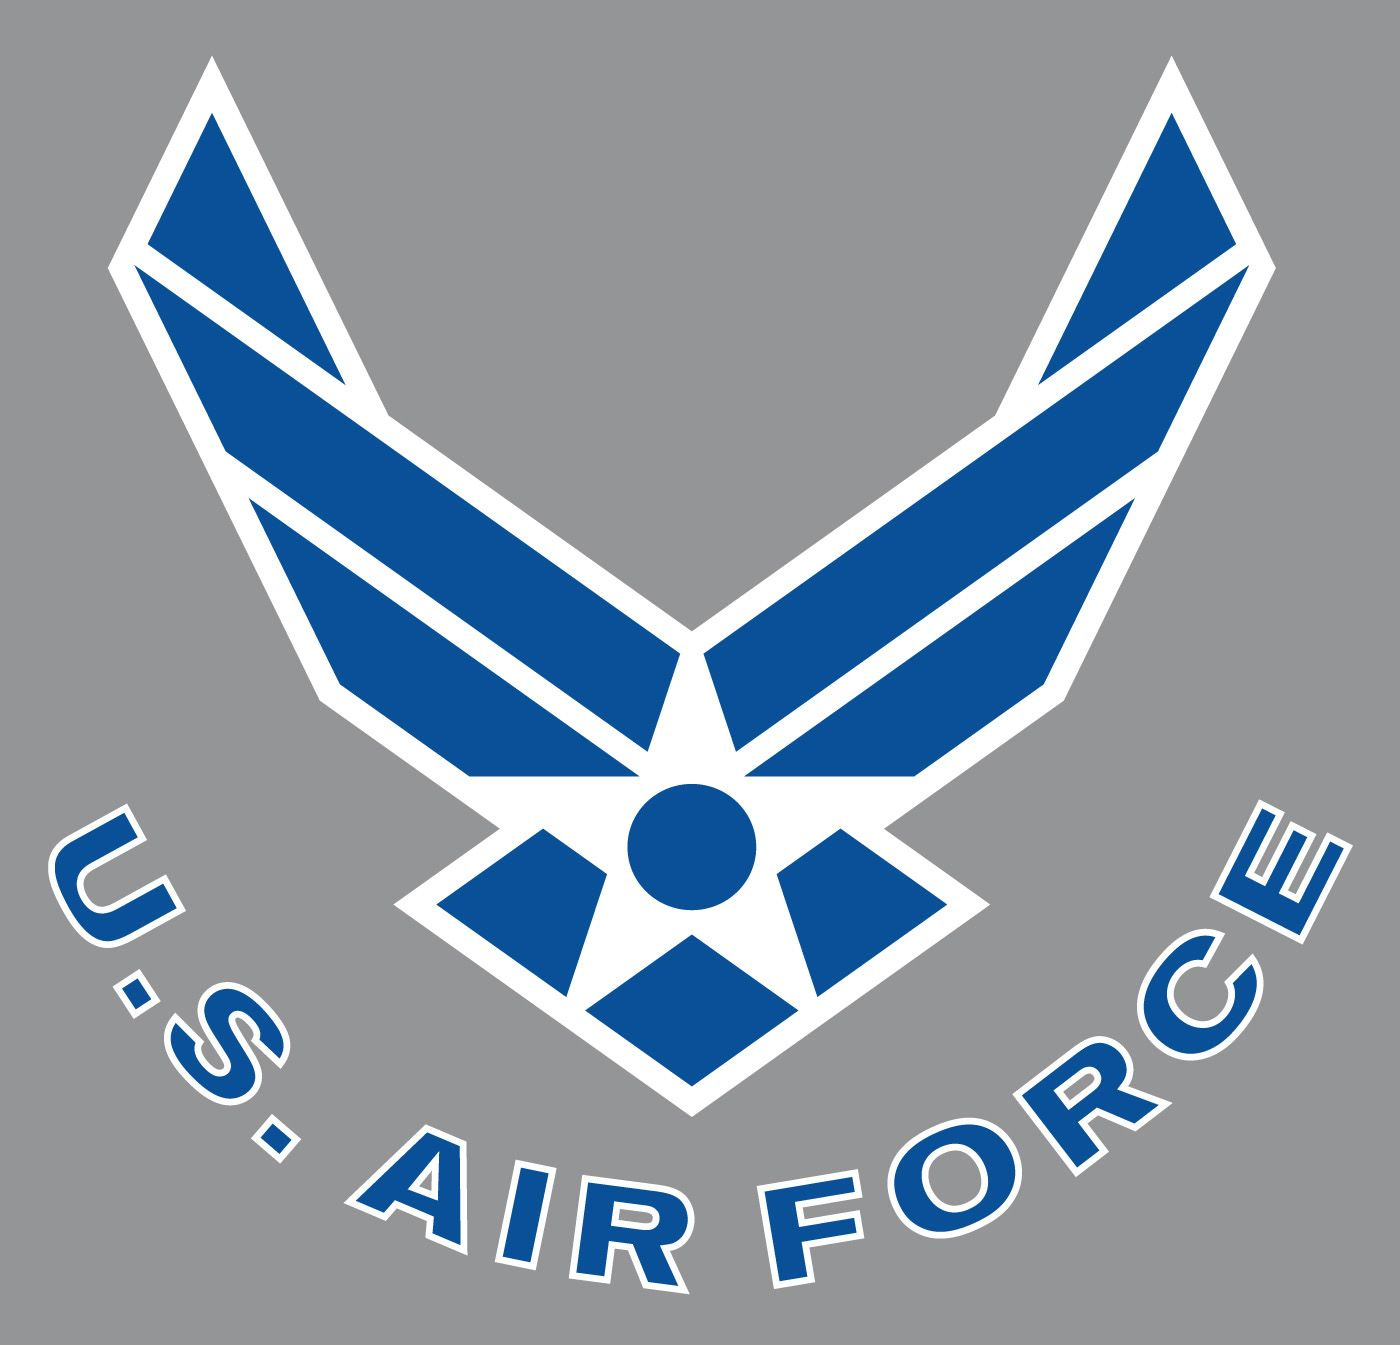 Air force emblems clipart 5 » Clipart Station.